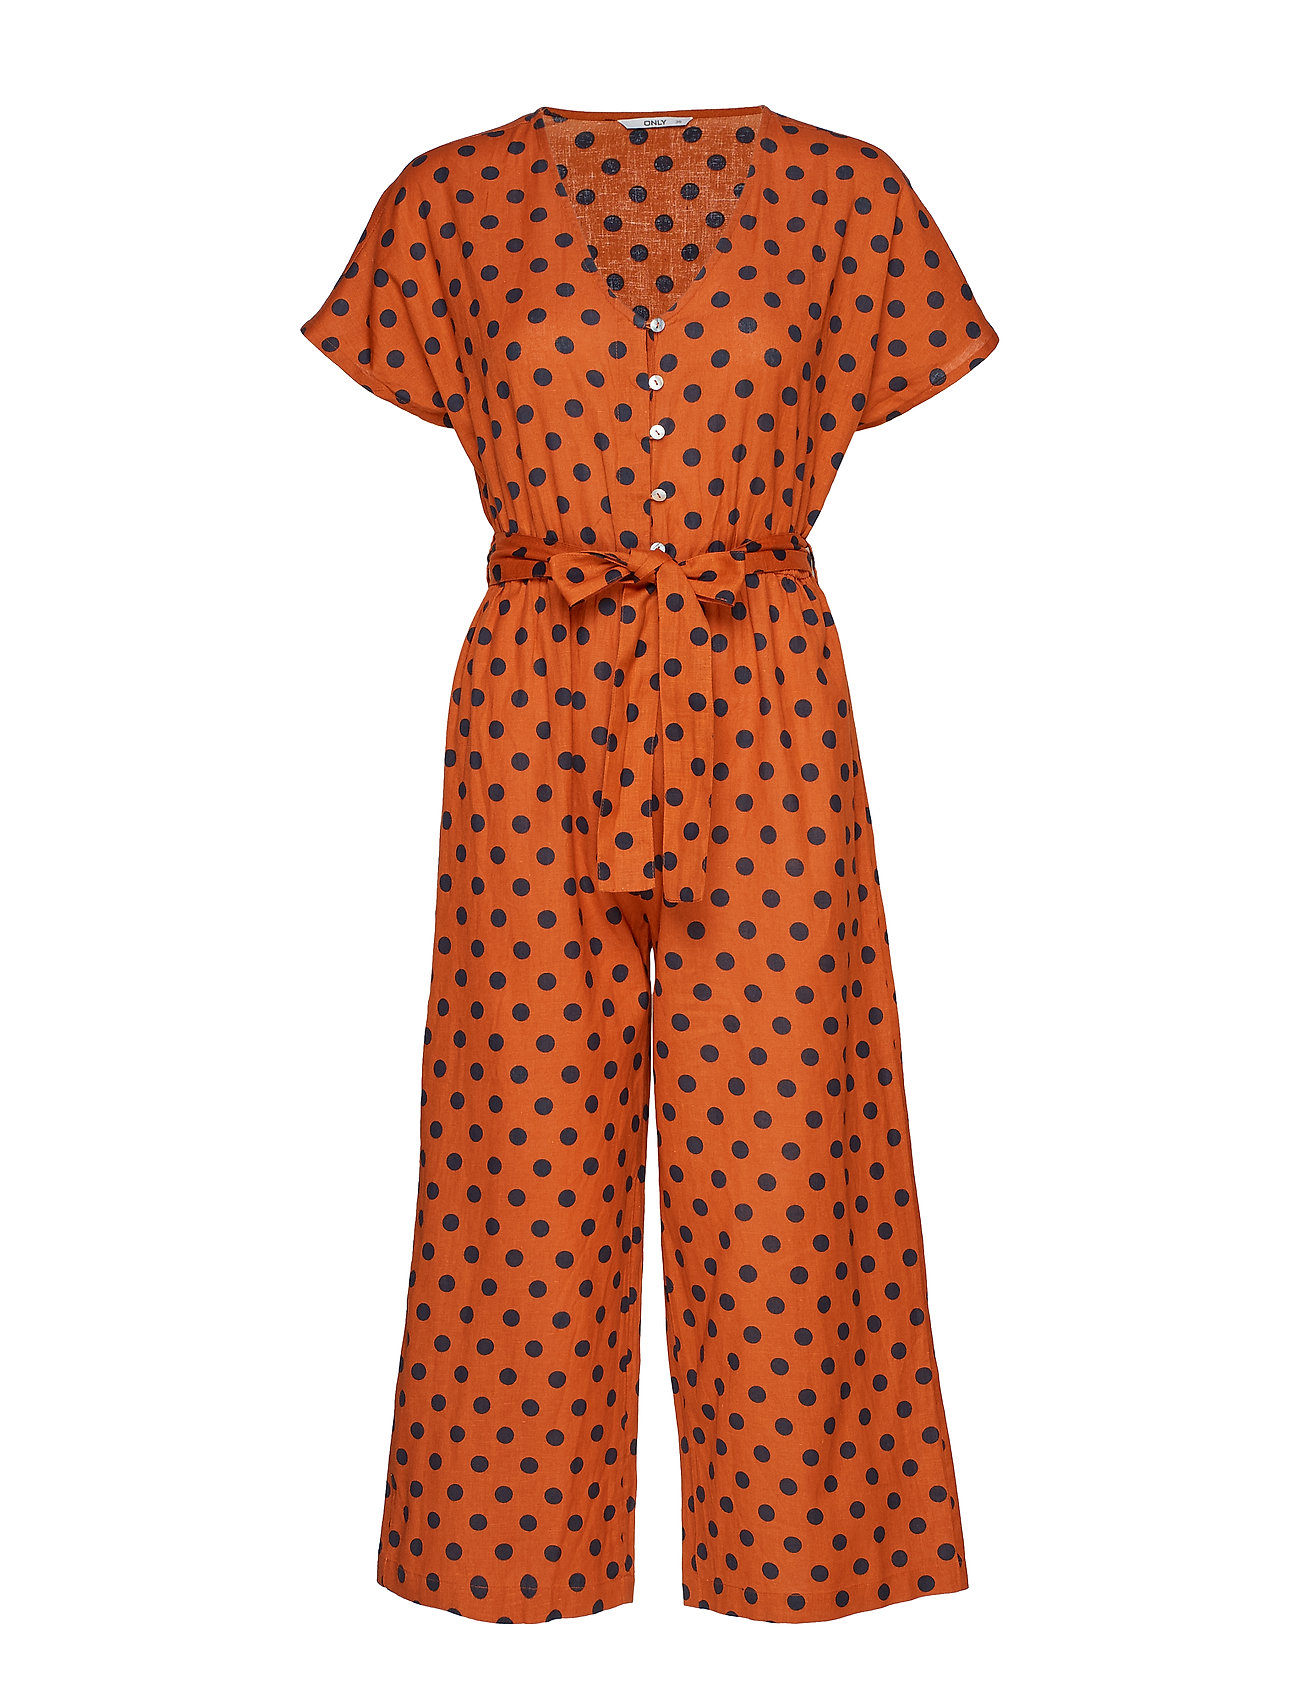 542b2cd40be Onldotty S/s Jumpsuit Wvn (Potters Clay) (33.74 €) - ONLY - | Boozt.com